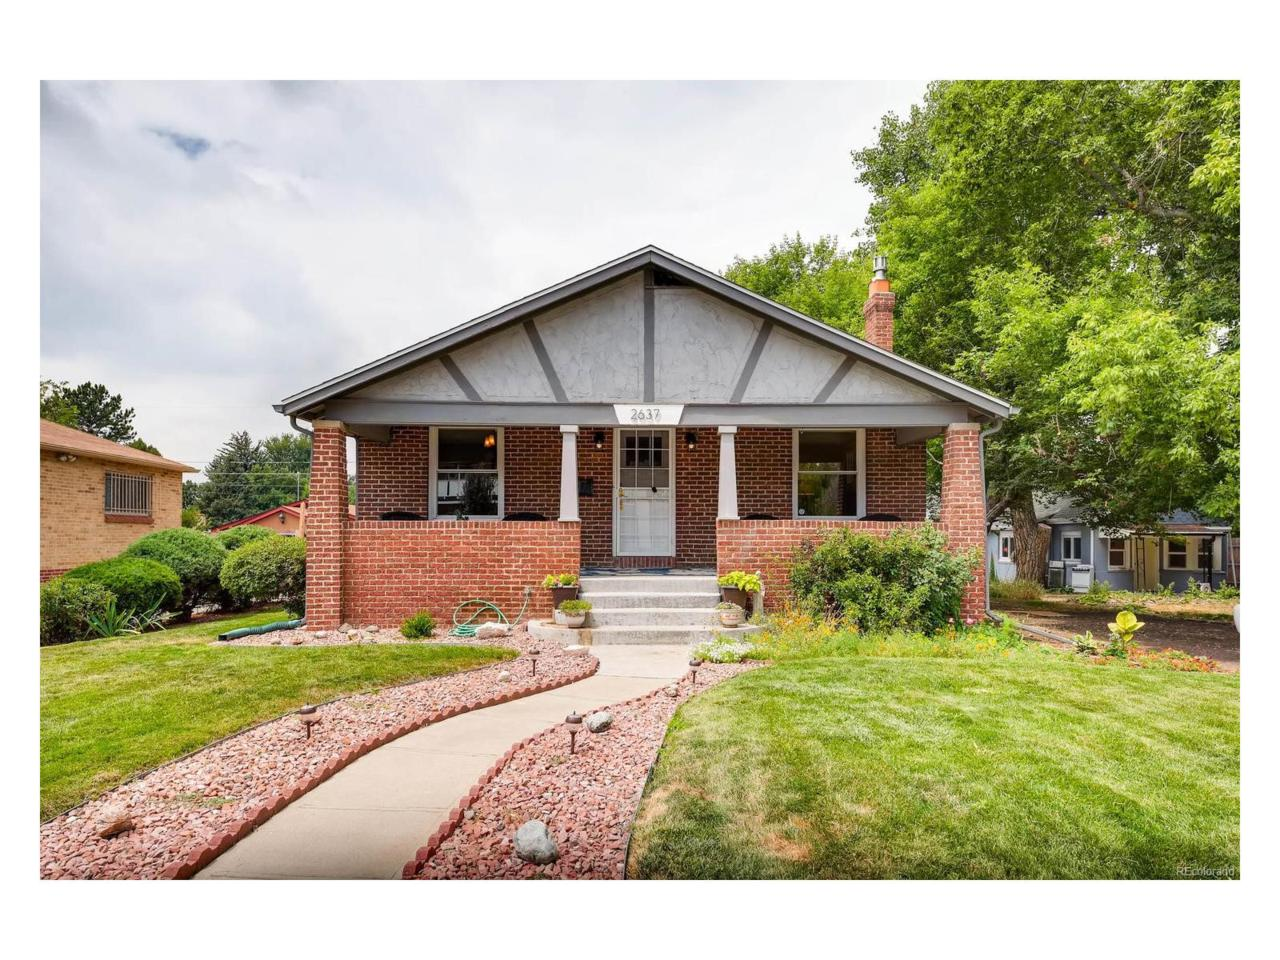 2637 N Garfield Street, Denver, CO 80205 (MLS #8227945) :: 8z Real Estate